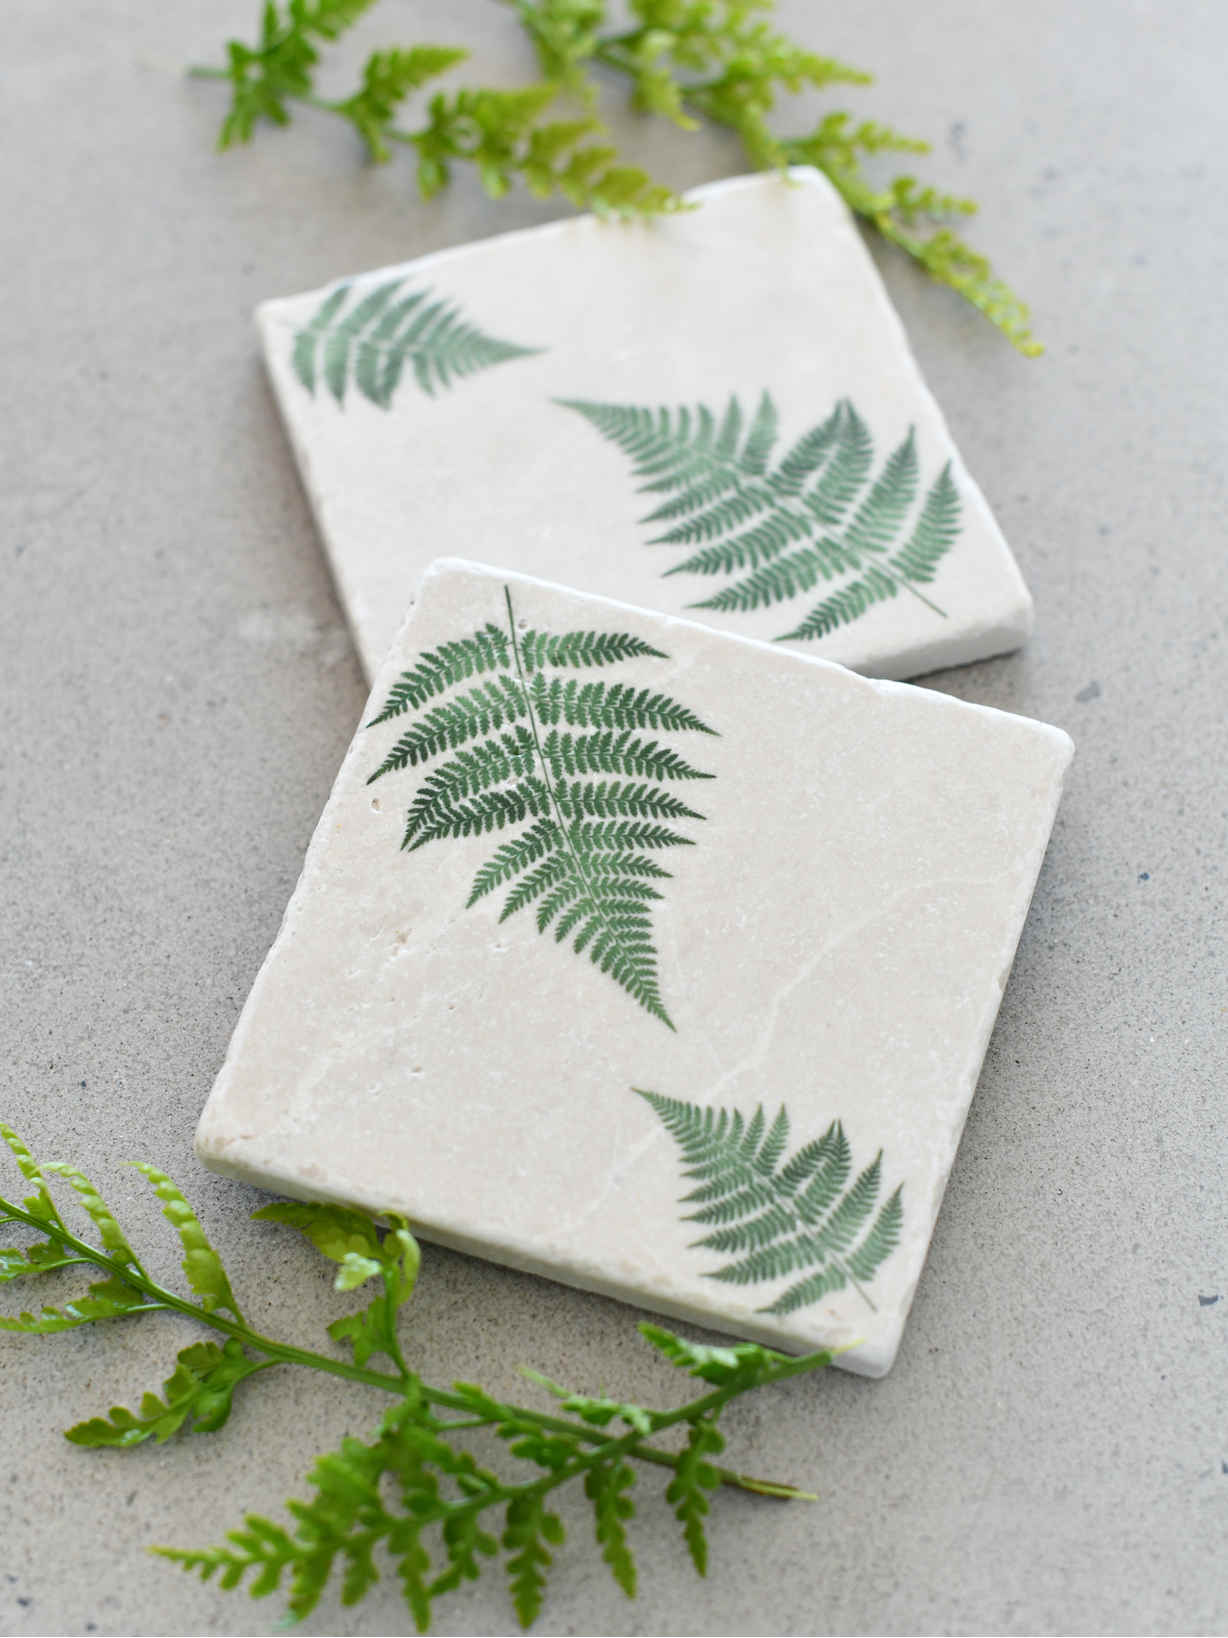 Nordic House Natural Stone Coasters - Forest Fern